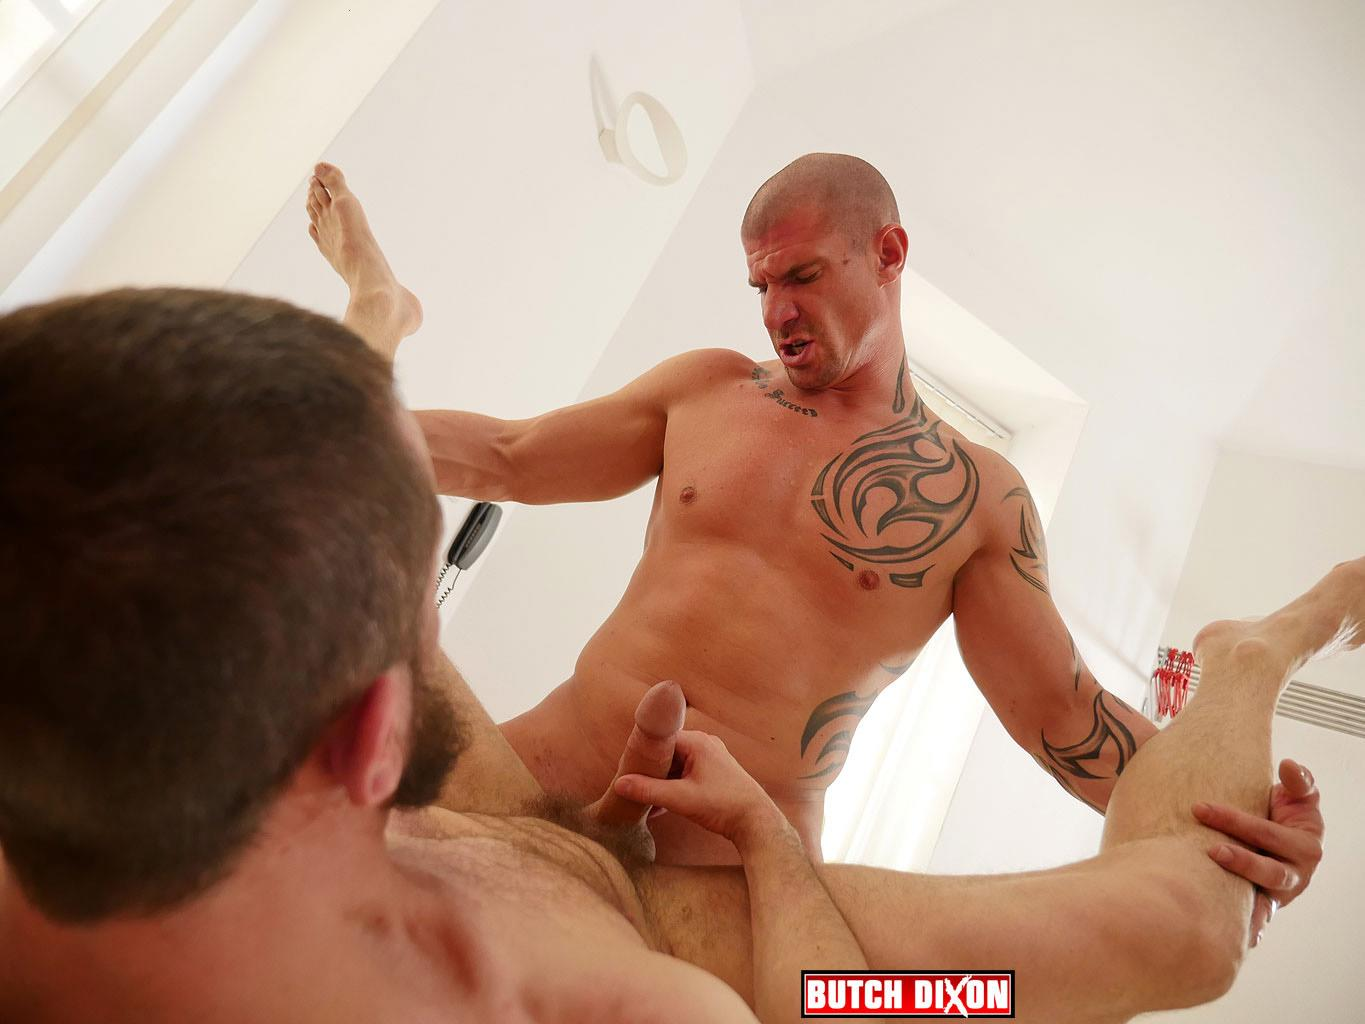 Butch Dixon Erik Lenn and Mike Bourne Masculine Guys Fucking Bareback Amateur Gay Porn 18